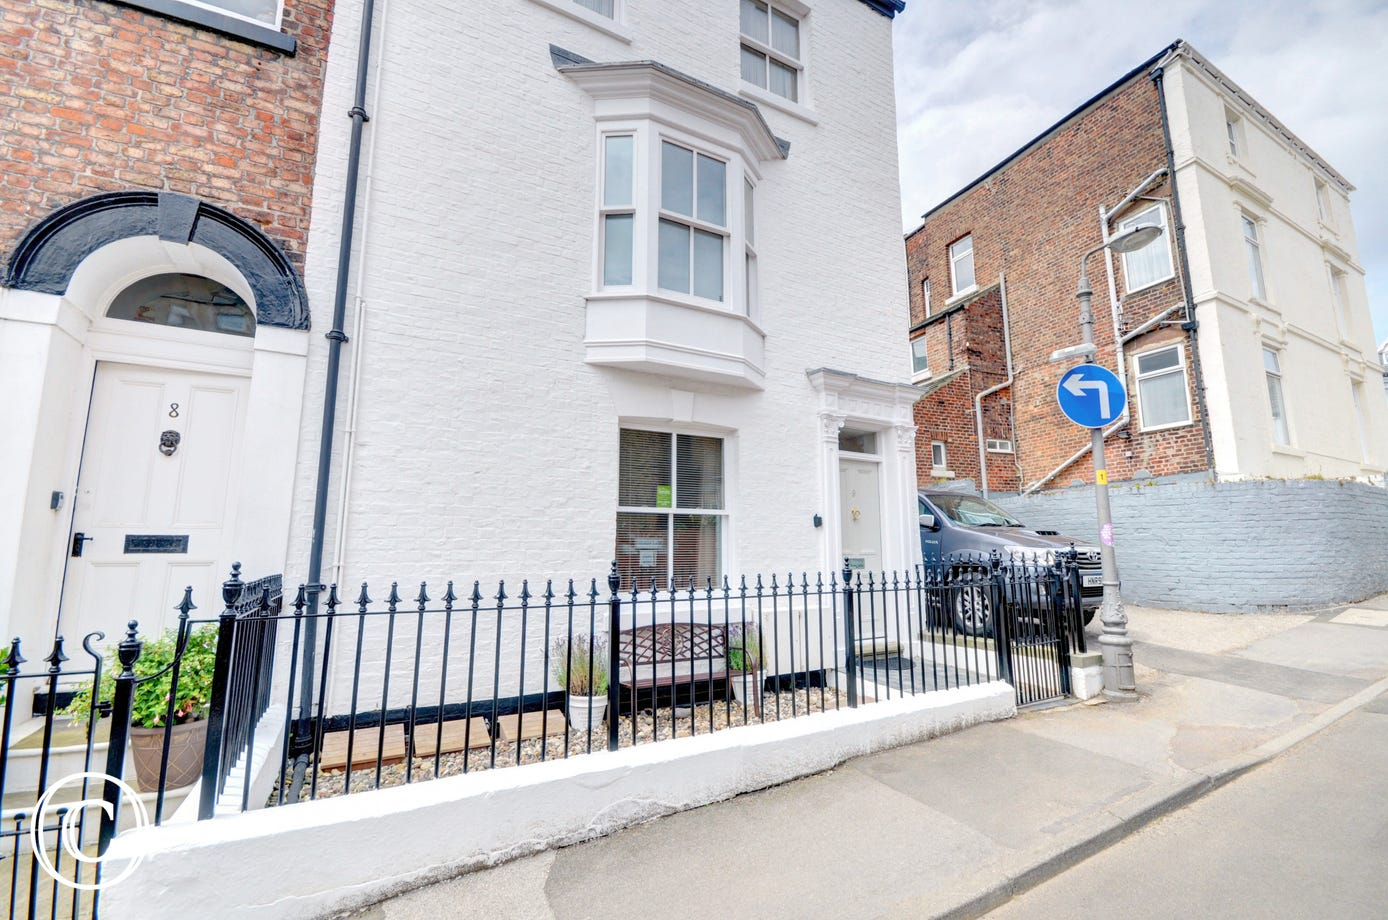 The apartment is located in the heart of Whitby.